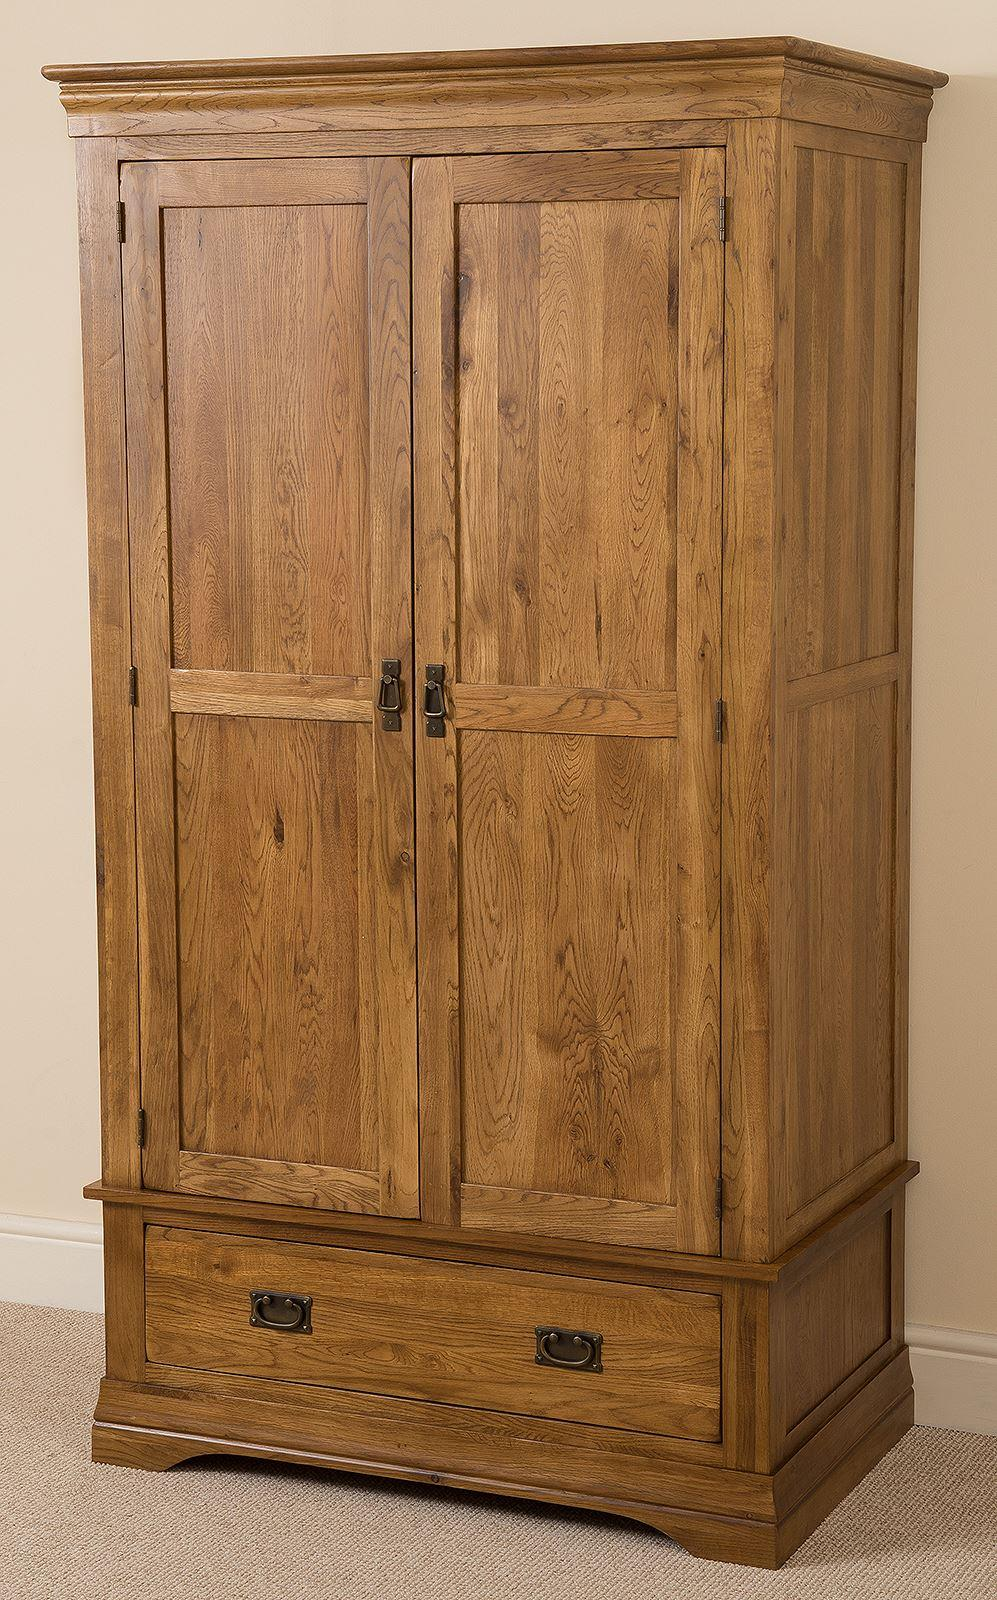 French Chateau Rustic Solid Oak Double Wardrobe